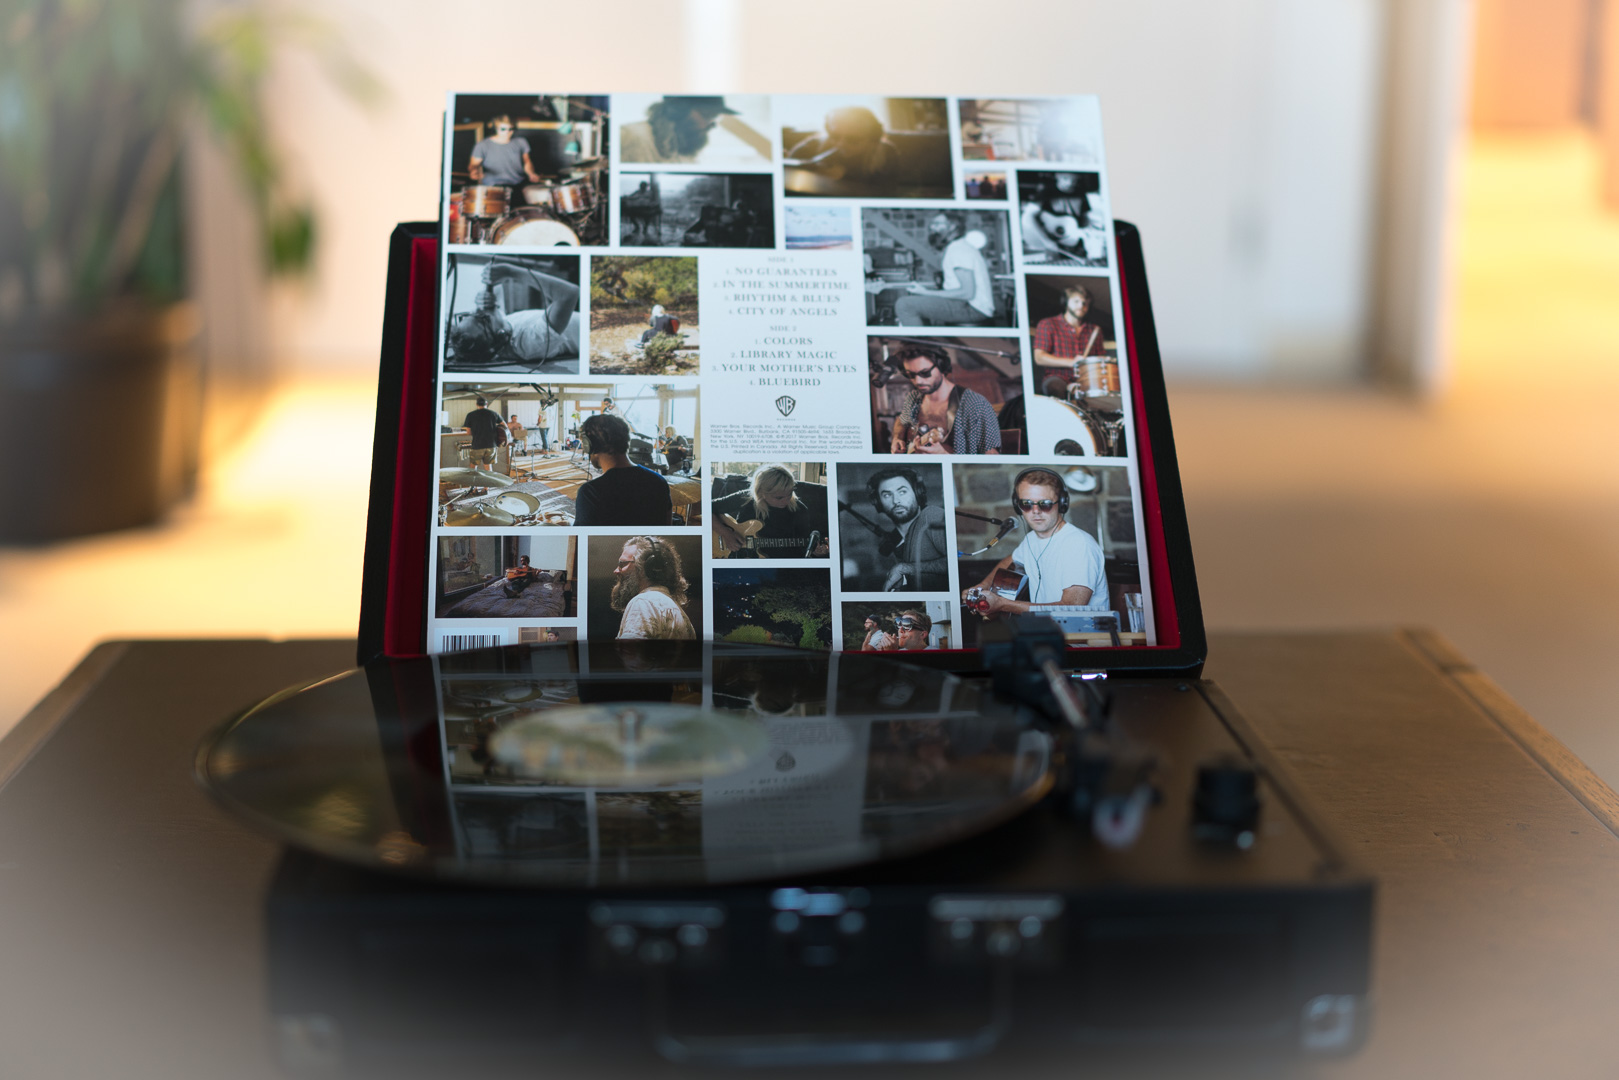 Featuring dozens of images captured during the writing of their  Signs of Light  album in Stinson Beach, CA., this Record Store Day limited edition album is now available for streaming by  clicking here .